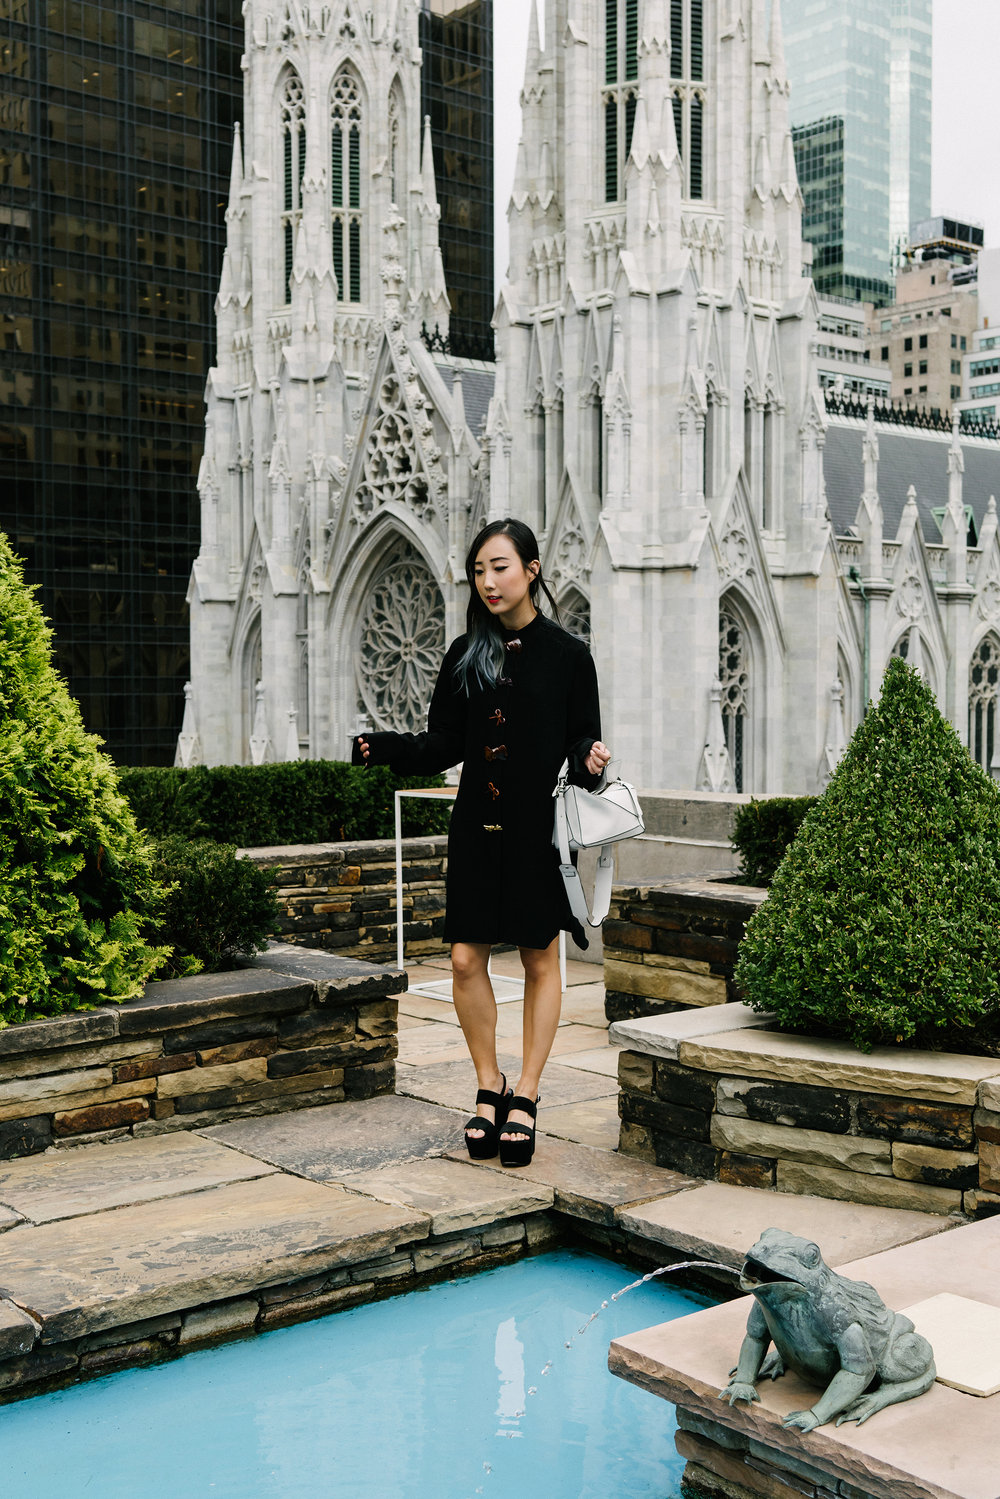 J.W.Anderson Dress, Saint Laurent Sandals, Loewe Bag